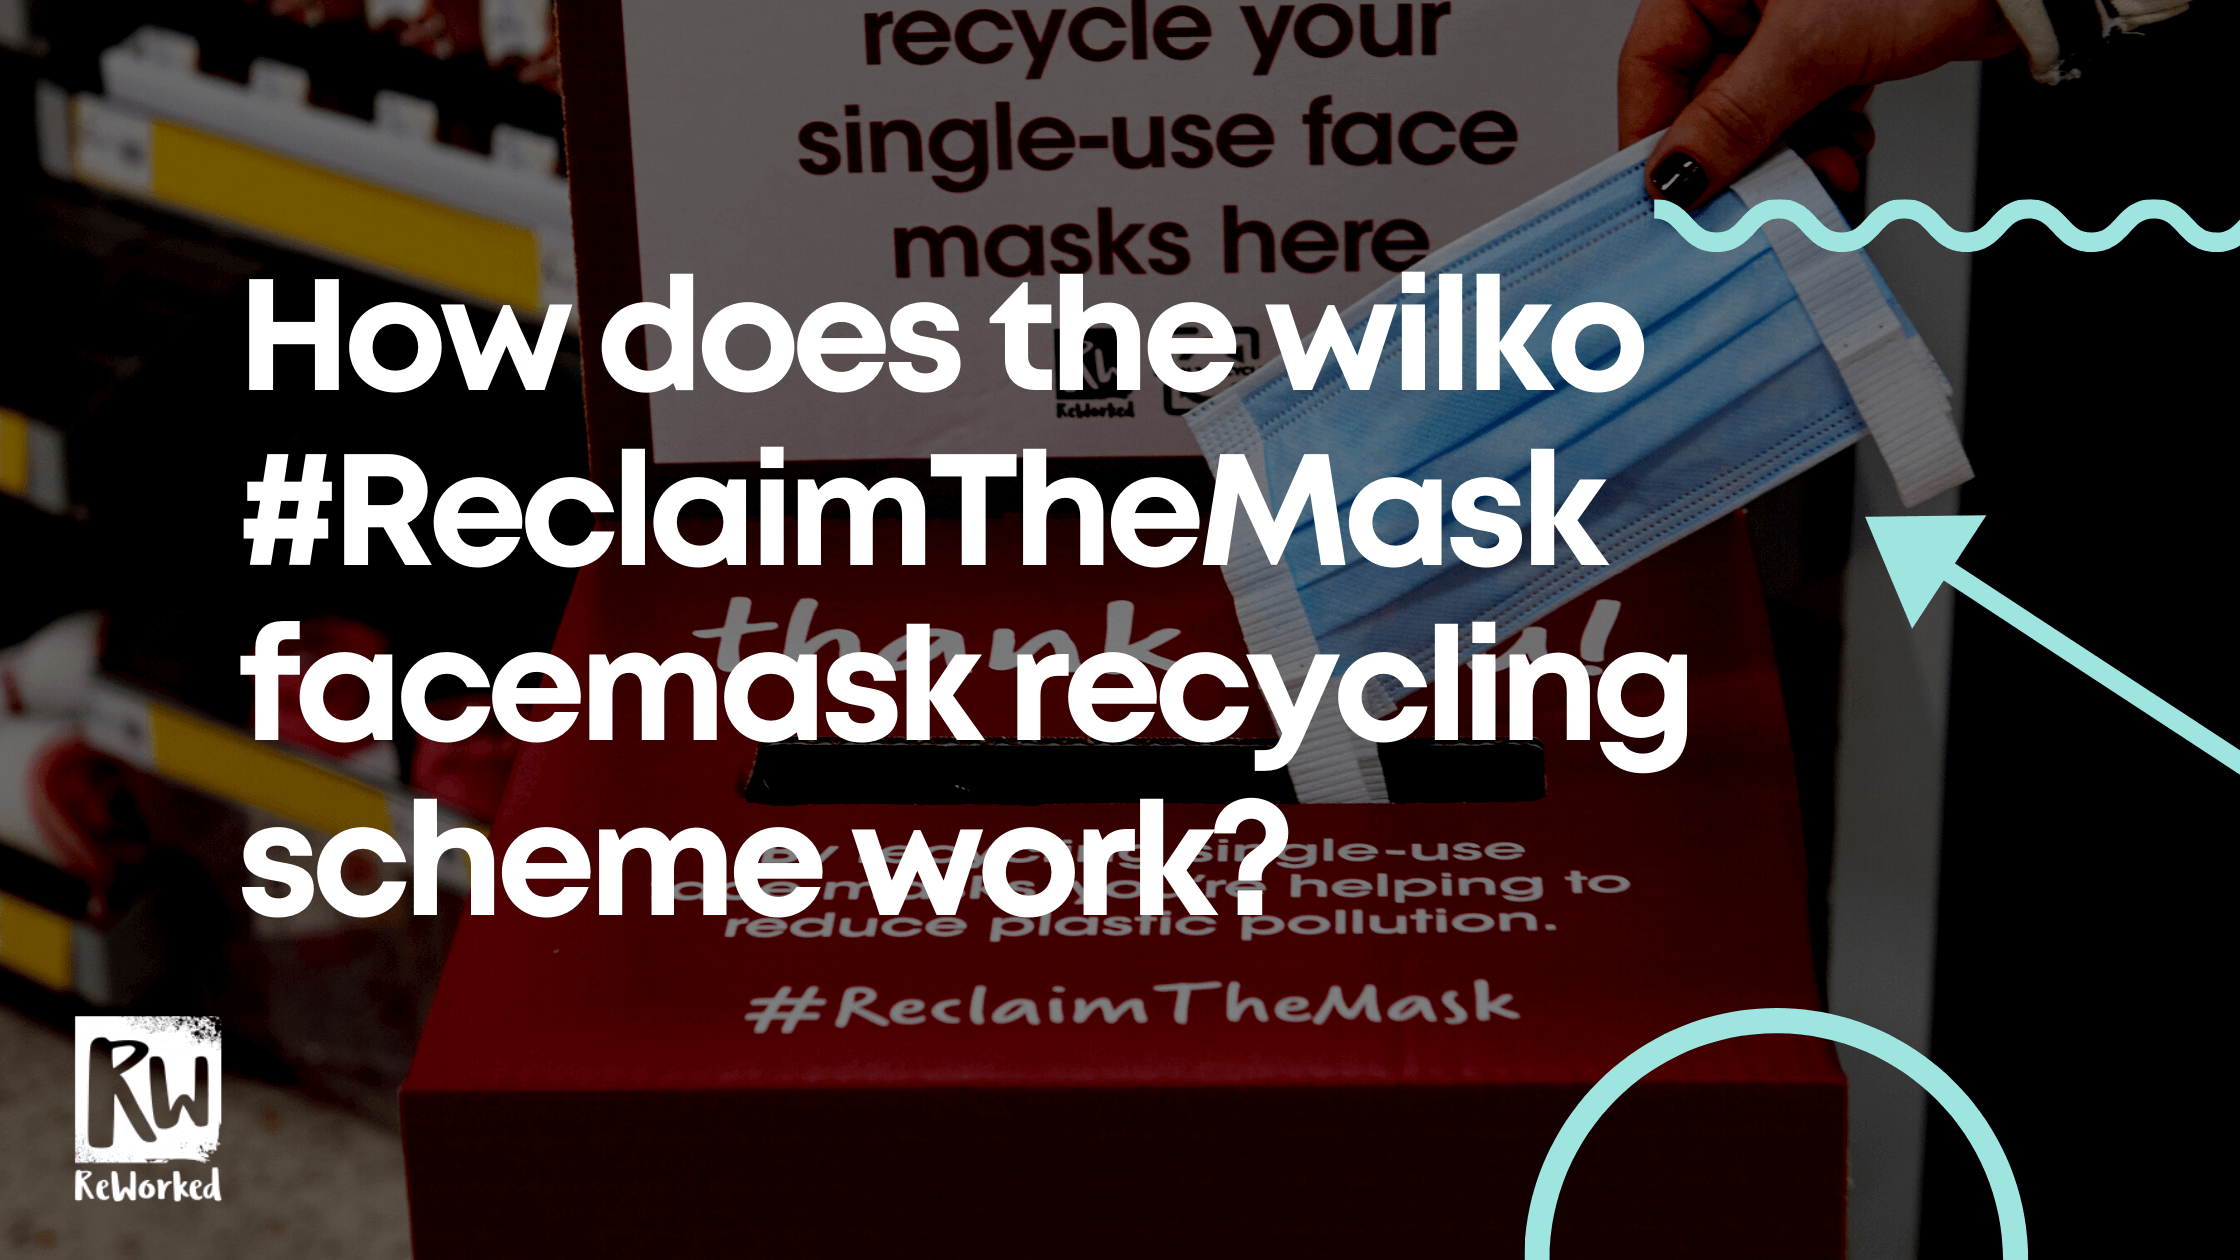 HOW DOES THE WILKO #RECLAIMTHEMASK FACEMASK RECYCLING SCHEME WORK?